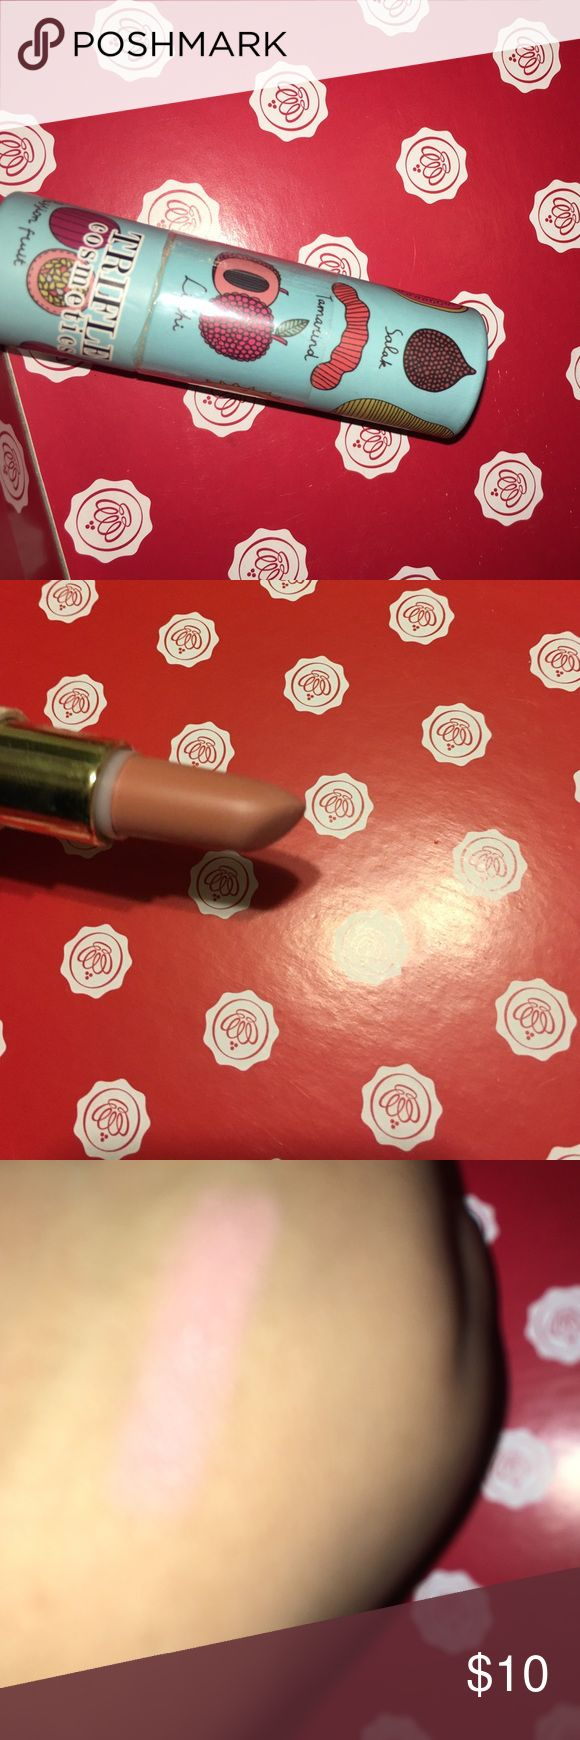 Trifle Cosmetics Exotic Fruit Creamy Lipstick Brand new, used once for swatch. Full Size Trifle Cosmetics Makeup Lipstick